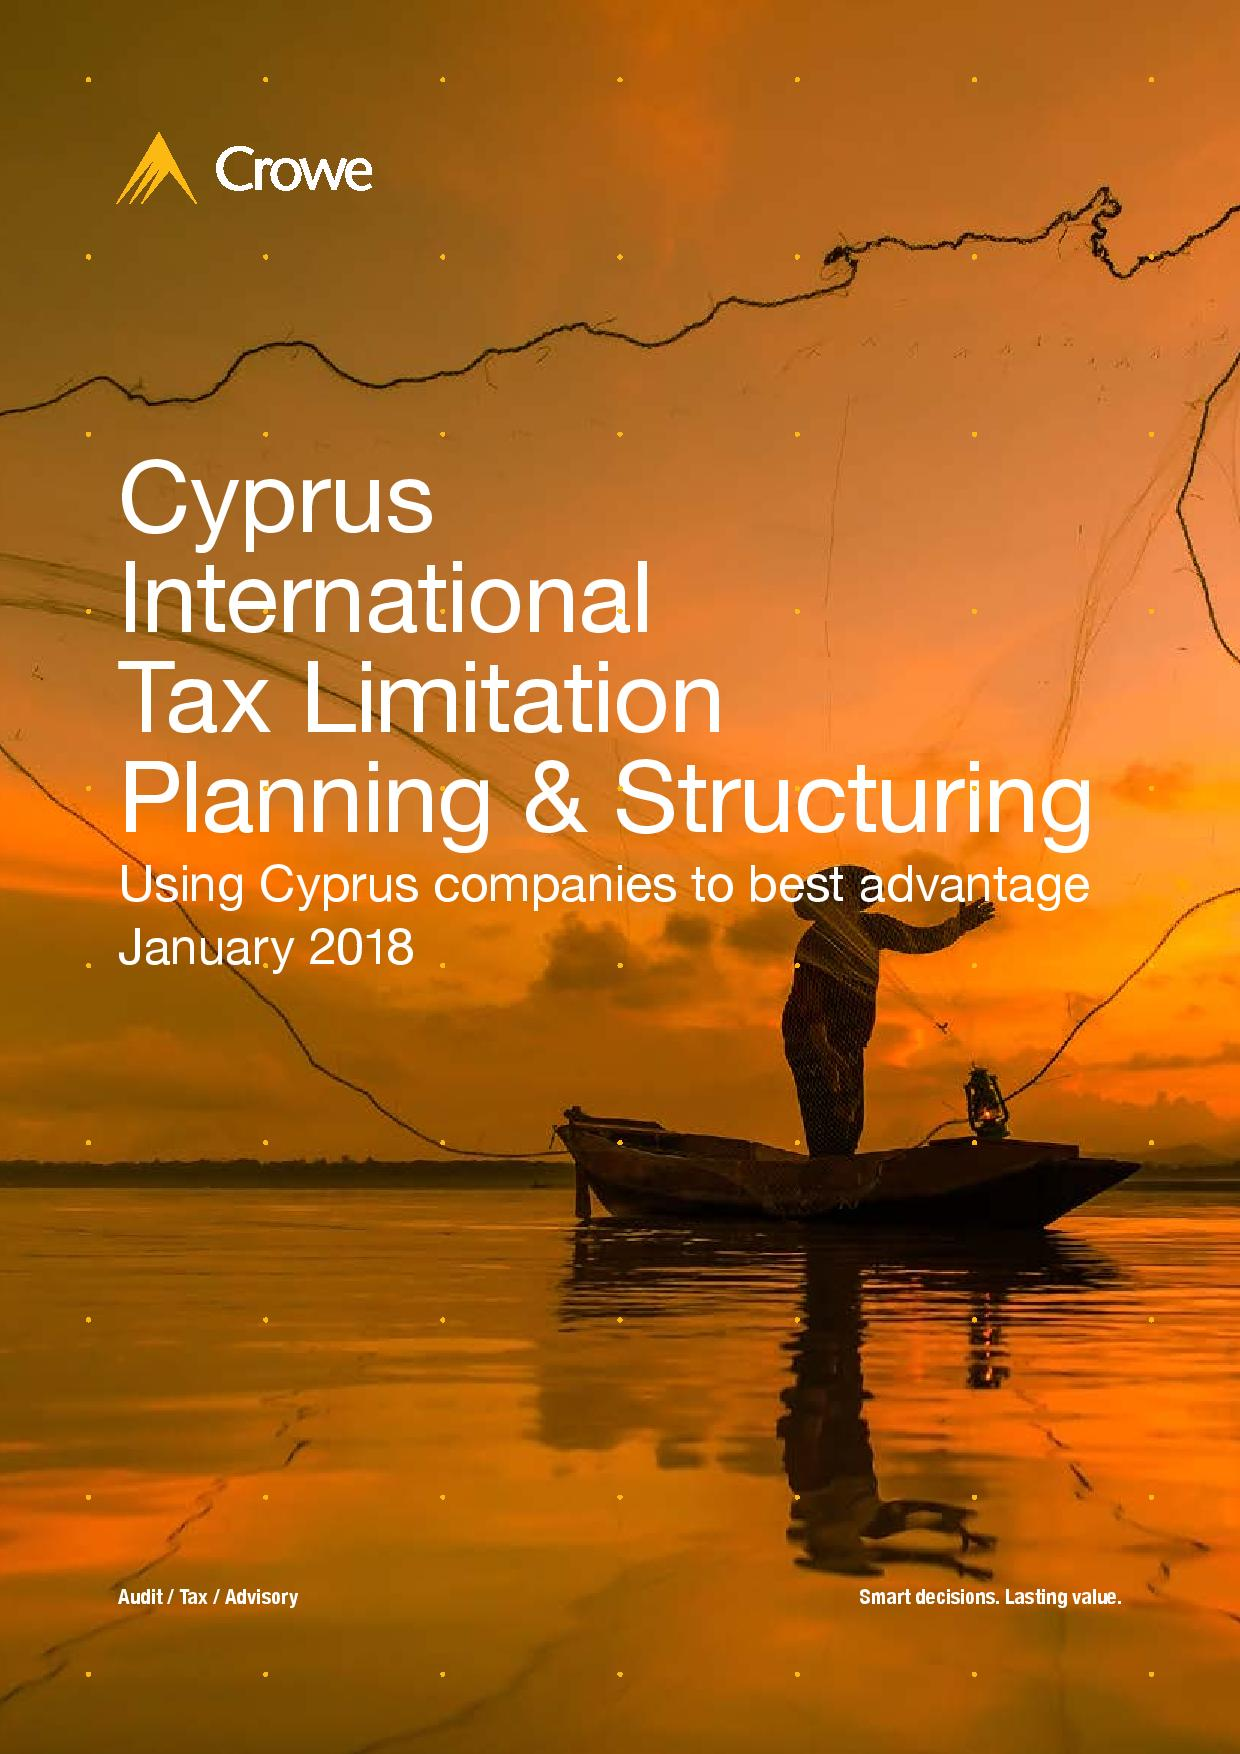 Crowe Cyprus: International Tax Limitation Planning and Structuring